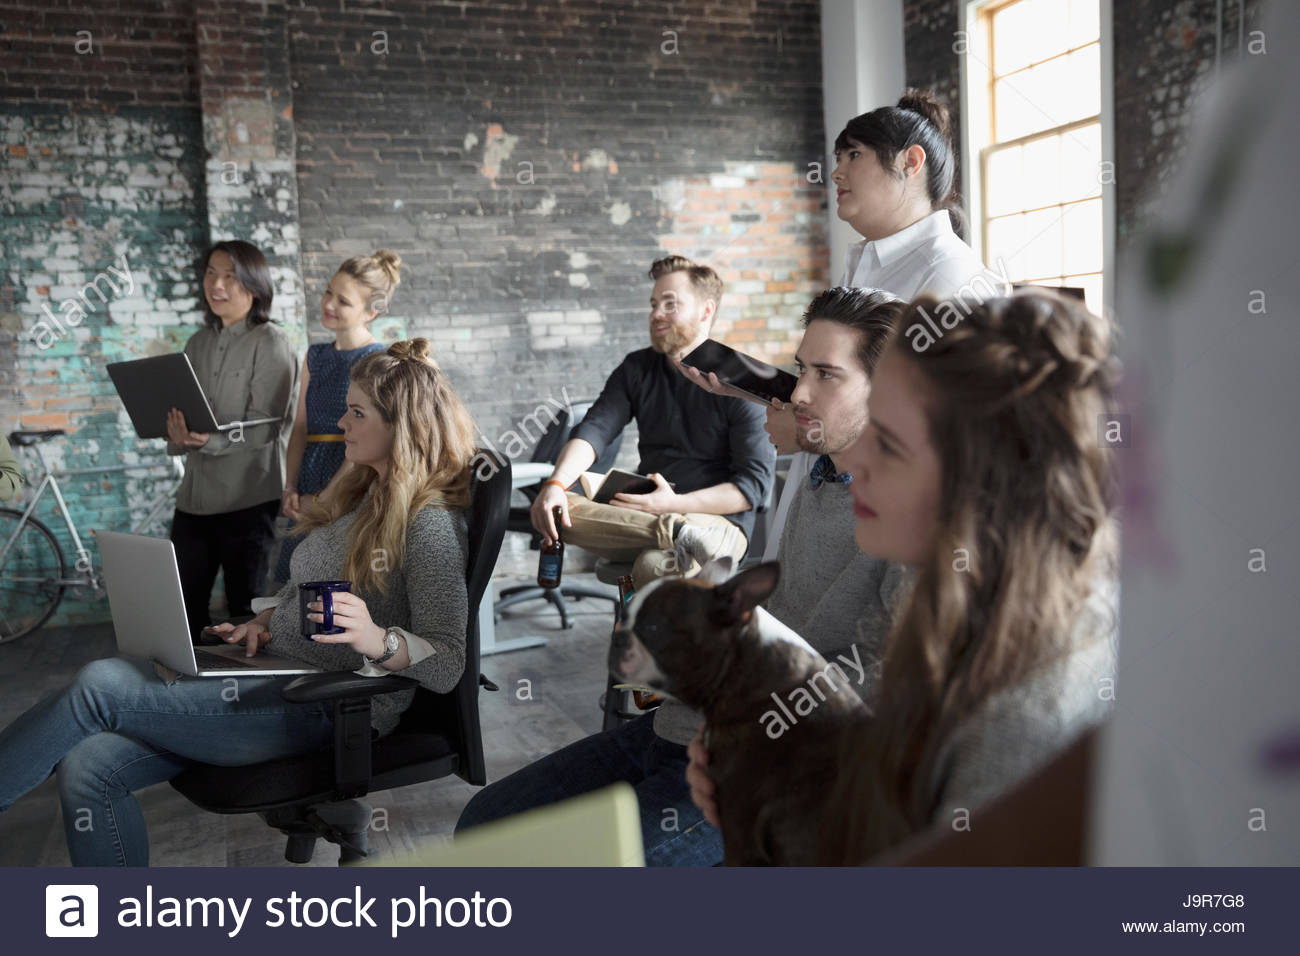 Attentive creative business people listening in meeting - Stock Image